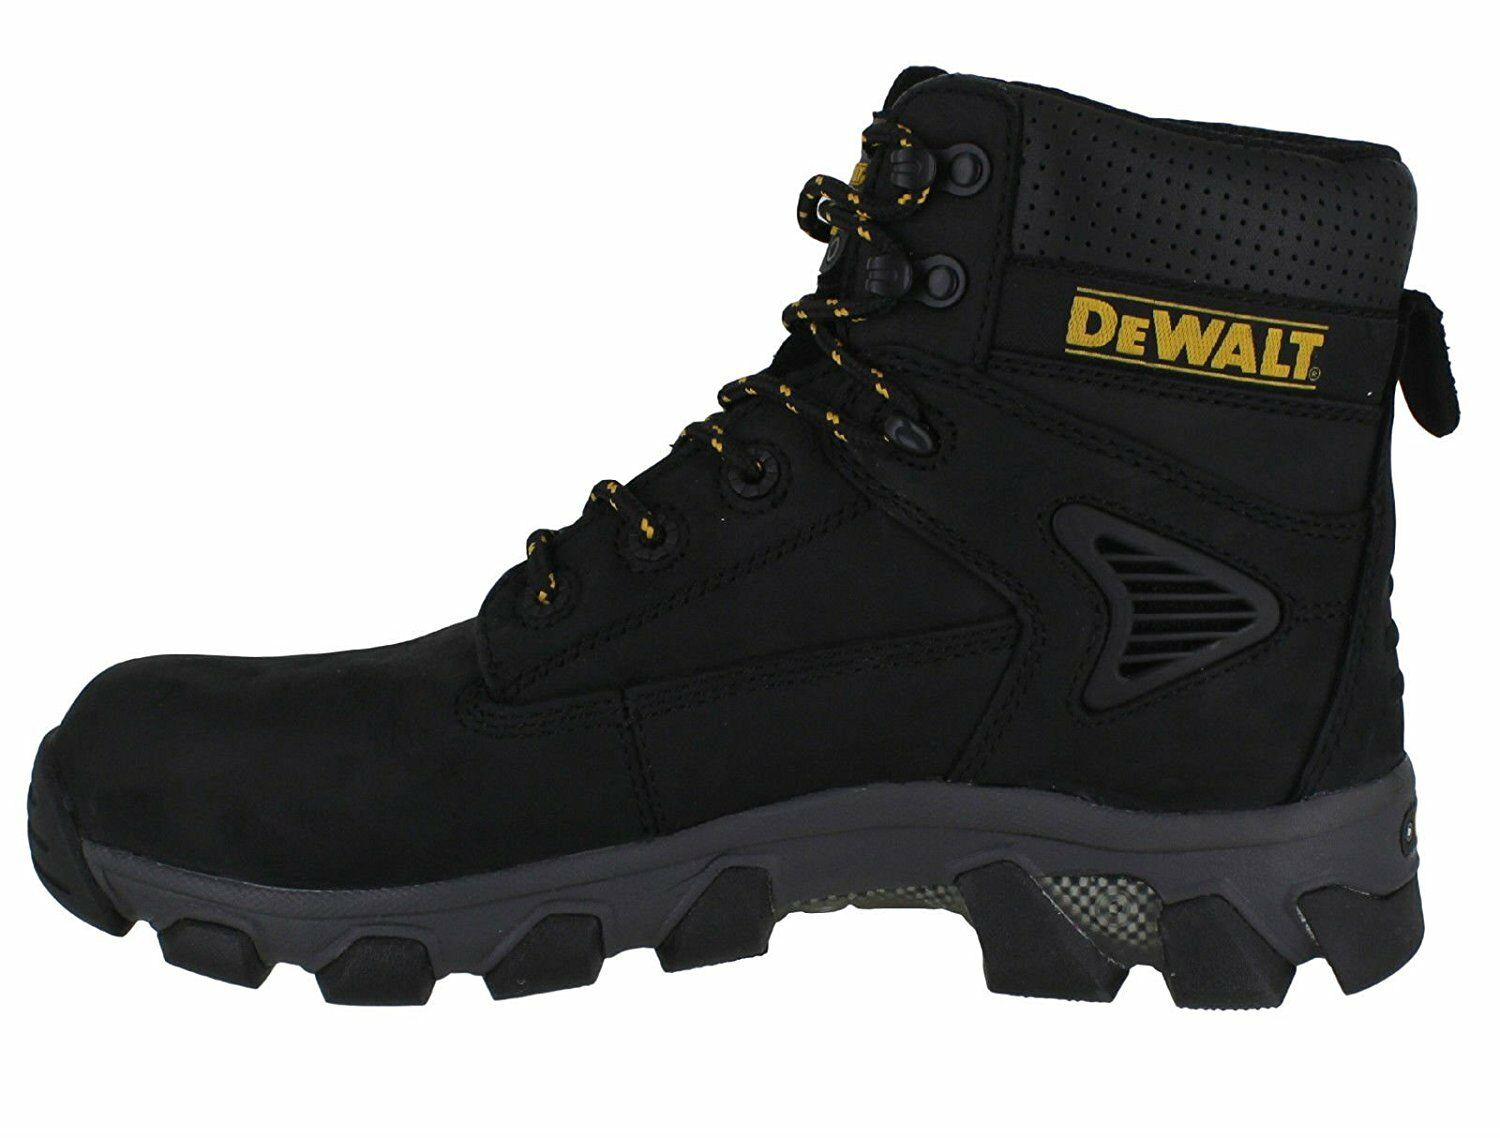 Dewalt Scalpello da men black shoes Lavgold Sicurezza - Punta Acciaio